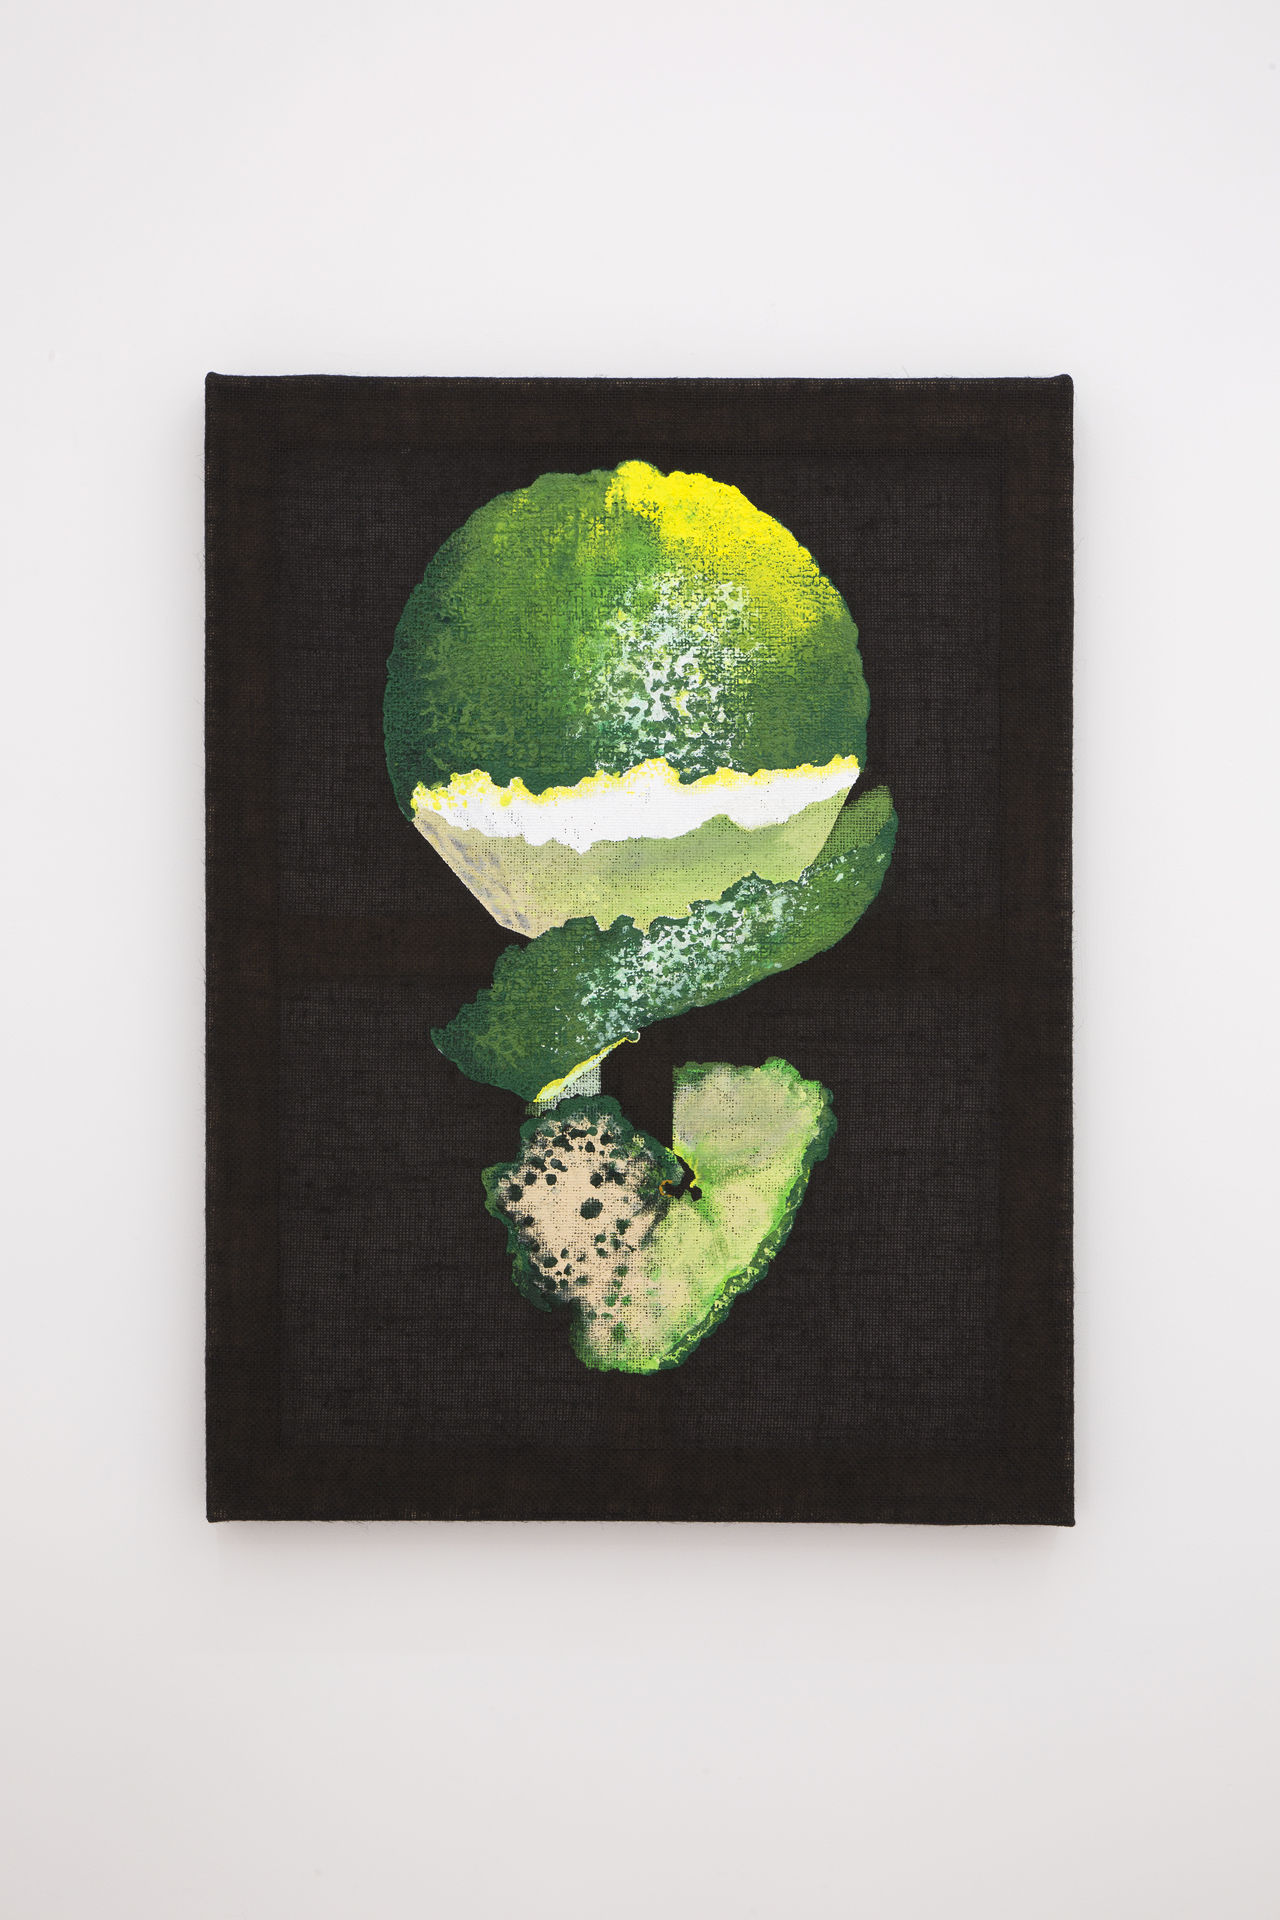 Maja Vukoje, Lime, 2017. Acrylic on burlap, 80 x 60 cm; 31,5 x 23,6 in.